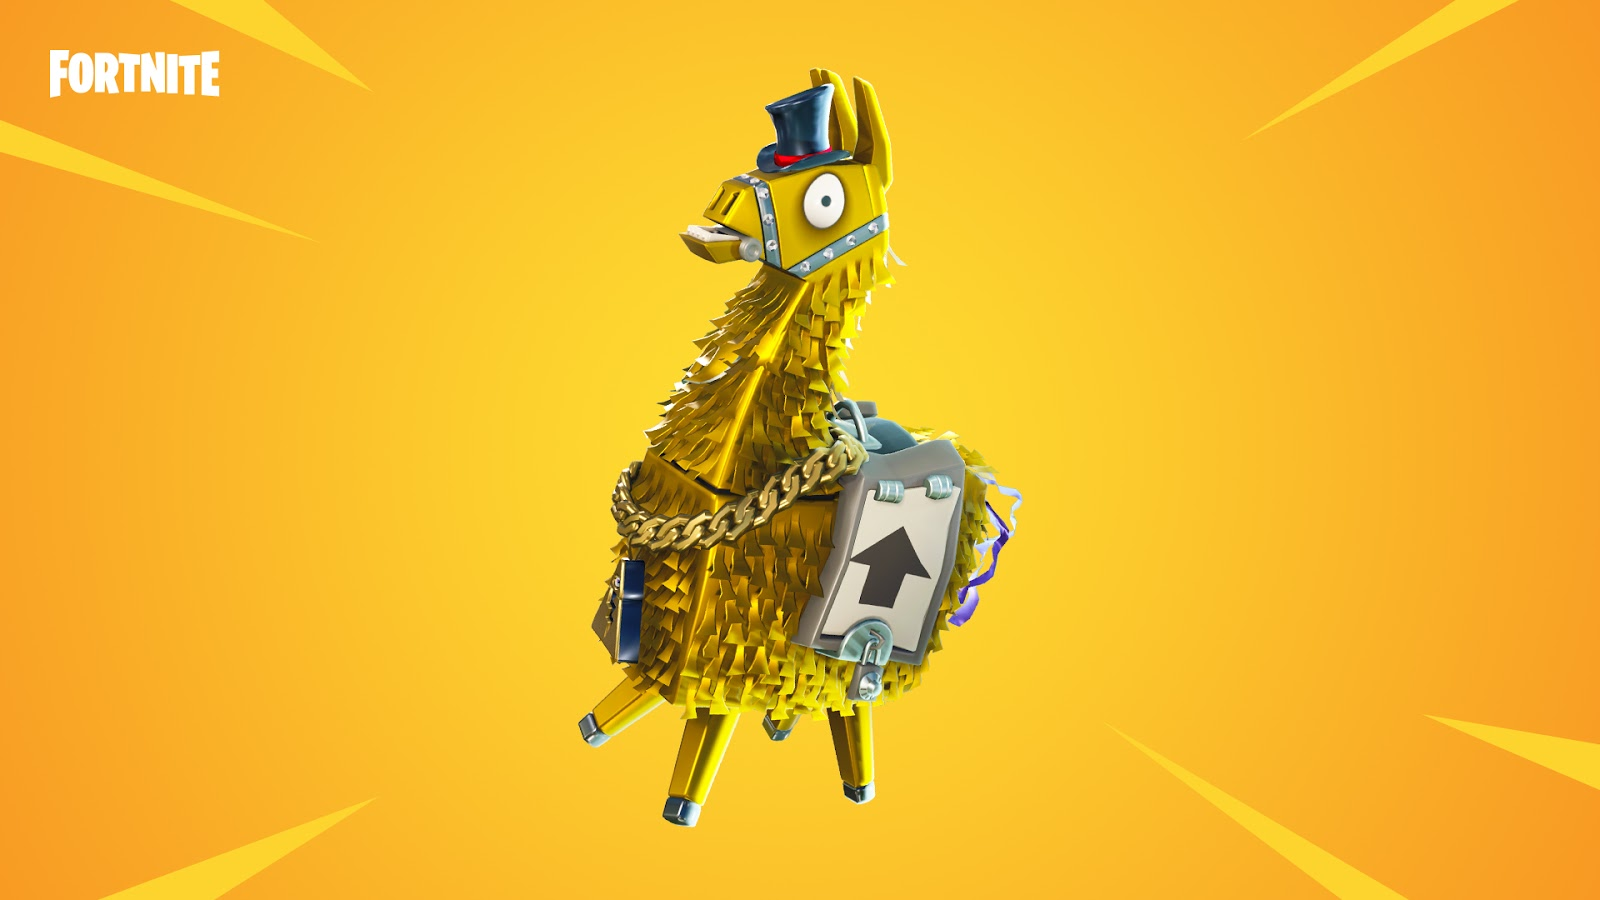 fortnite save the world legendary troll stash llama reward for 2fa